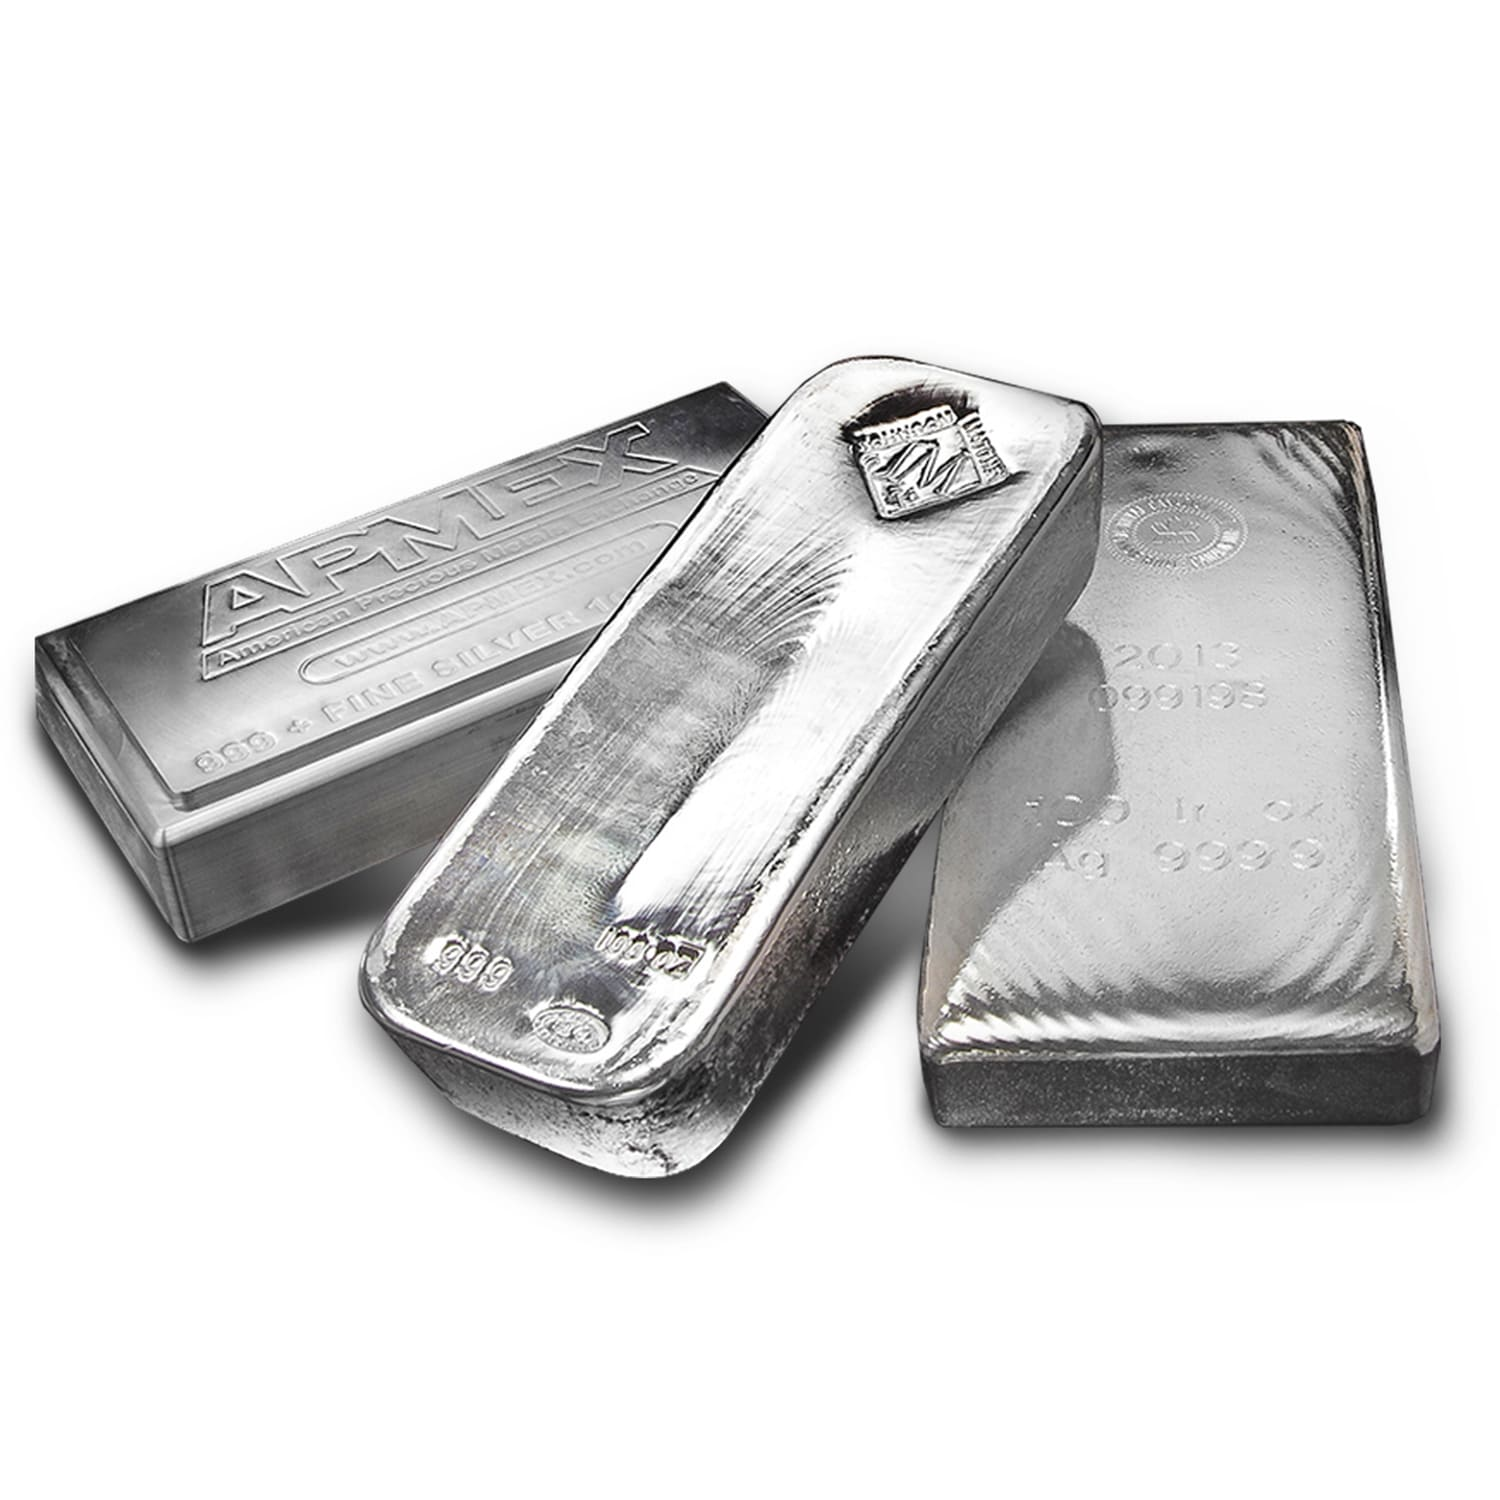 100.75 oz Silver Bars - Secondary Market